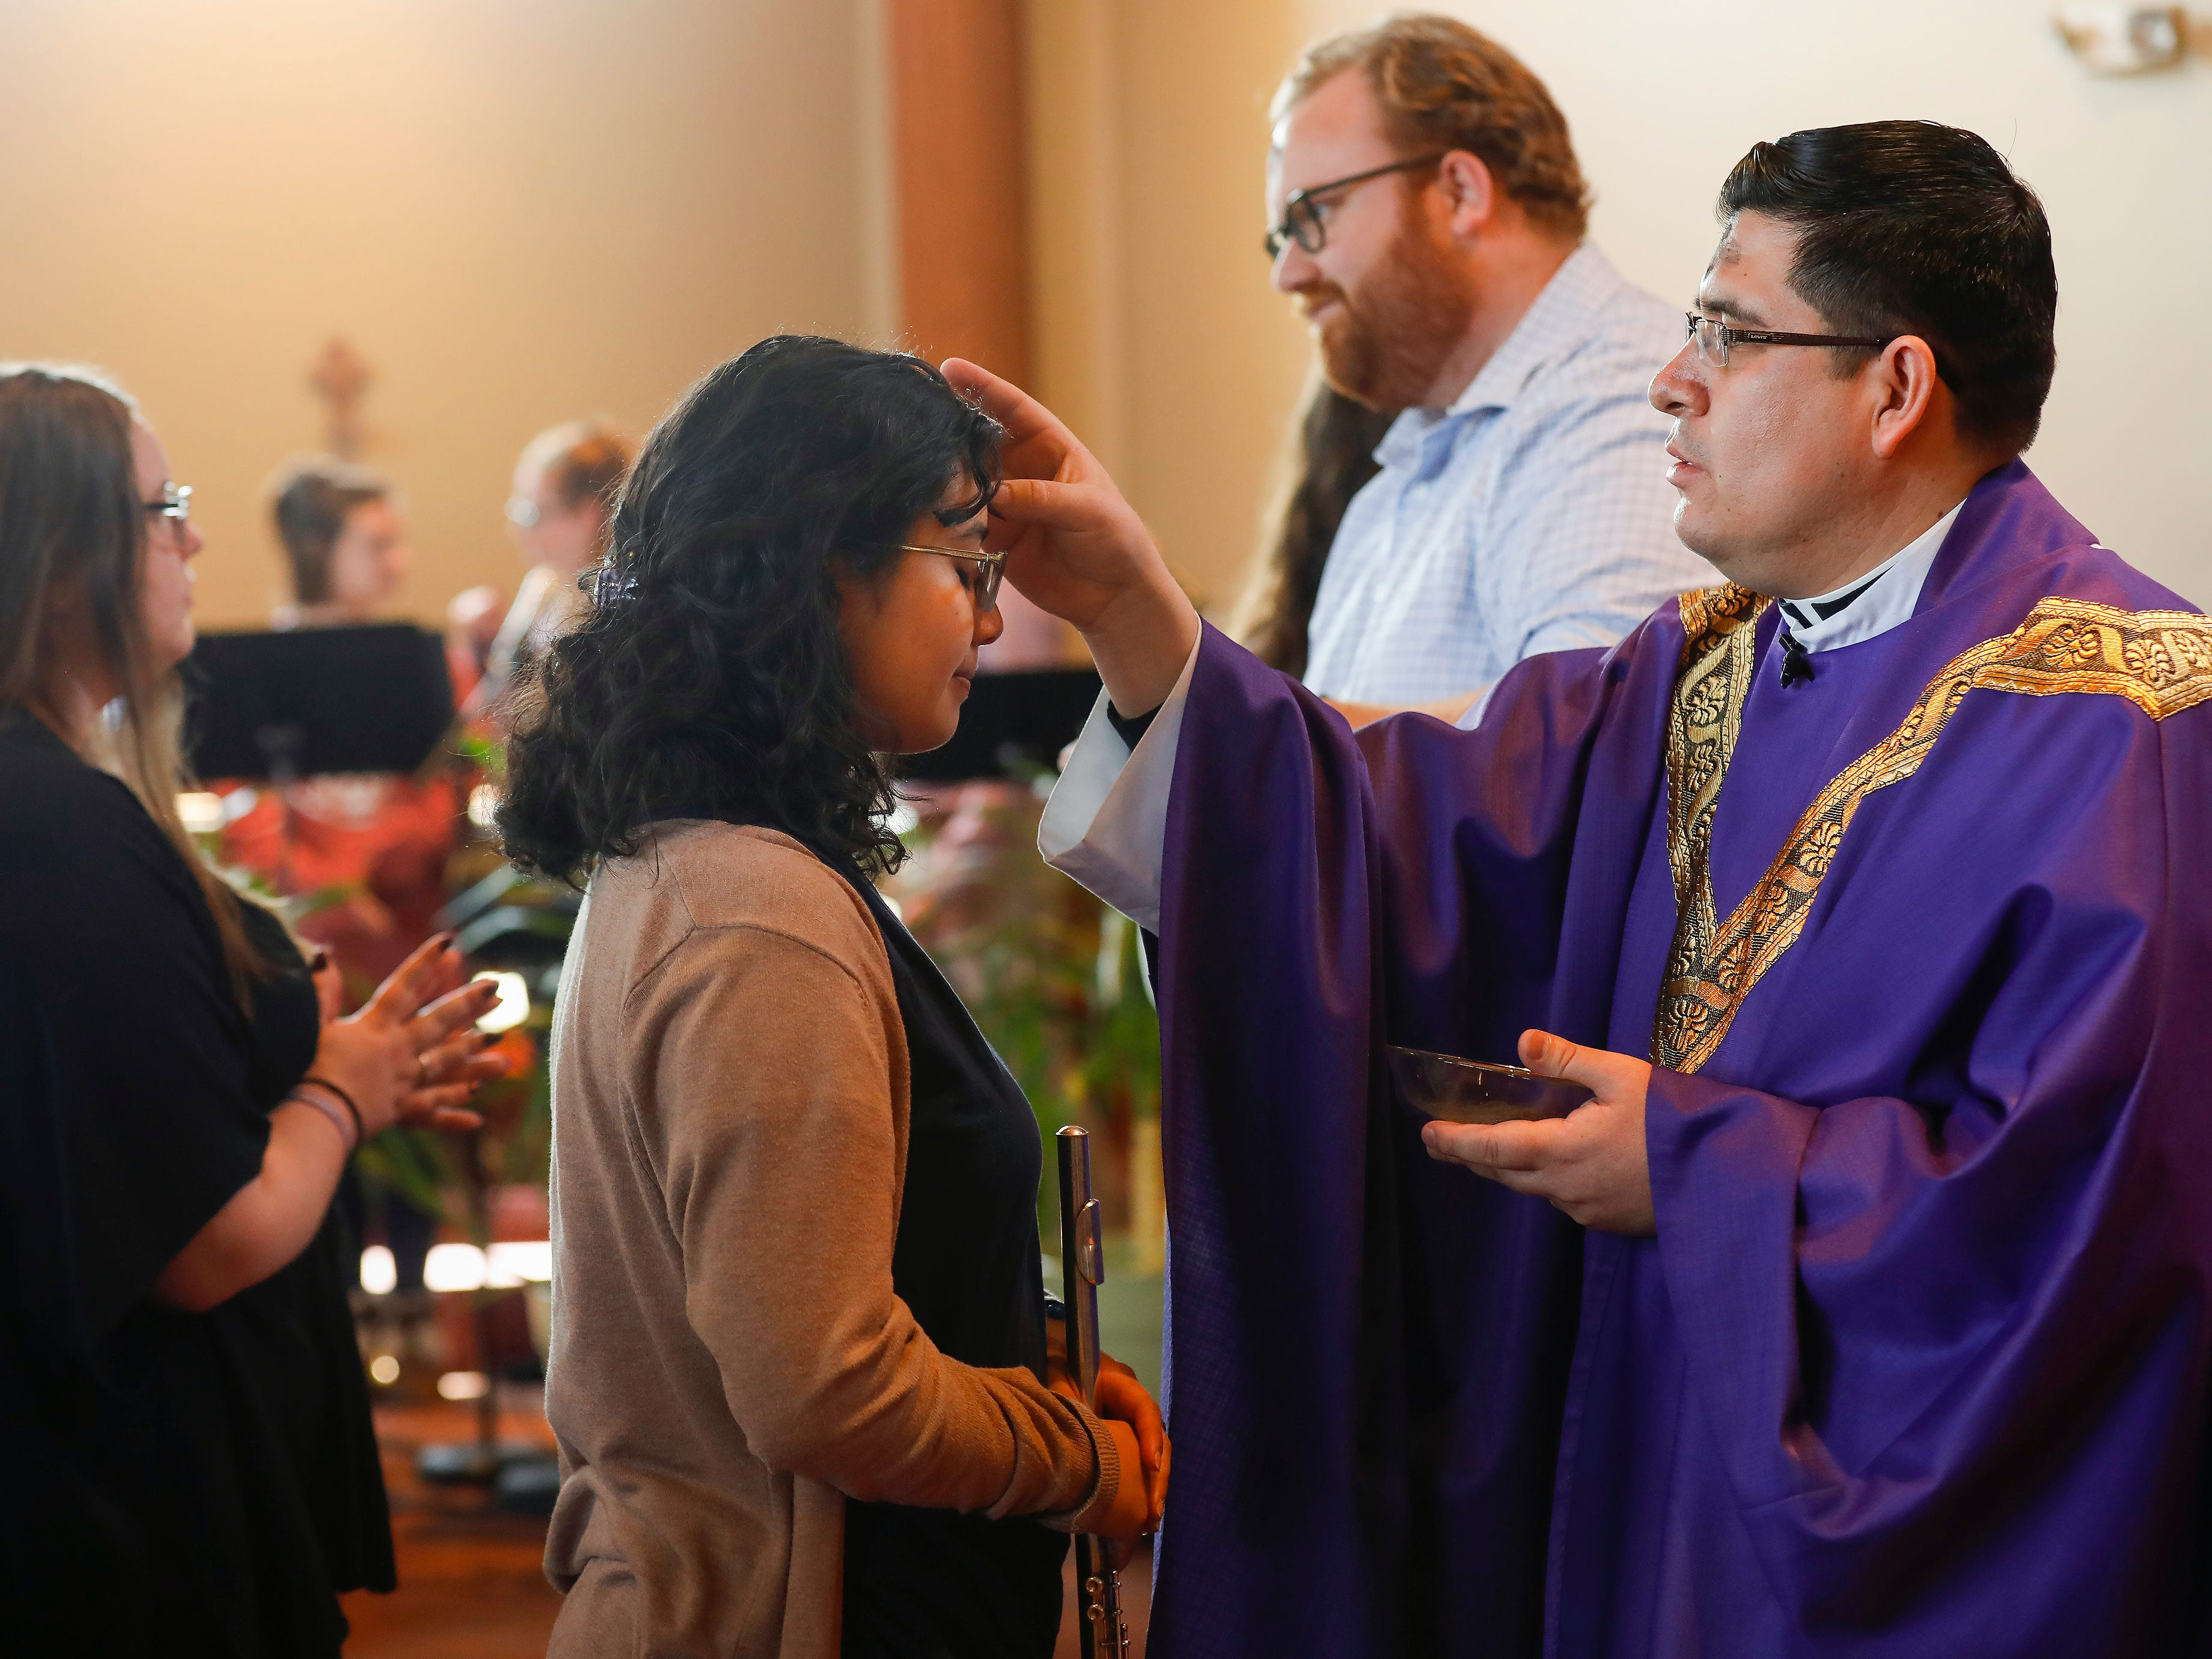 Father Javier Reyes applies ashes to a congregant's forehead during the Ash Wednesday Mass at the Missouri State University Catholic Campus Ministry on Wednesday, March 6, 2019.